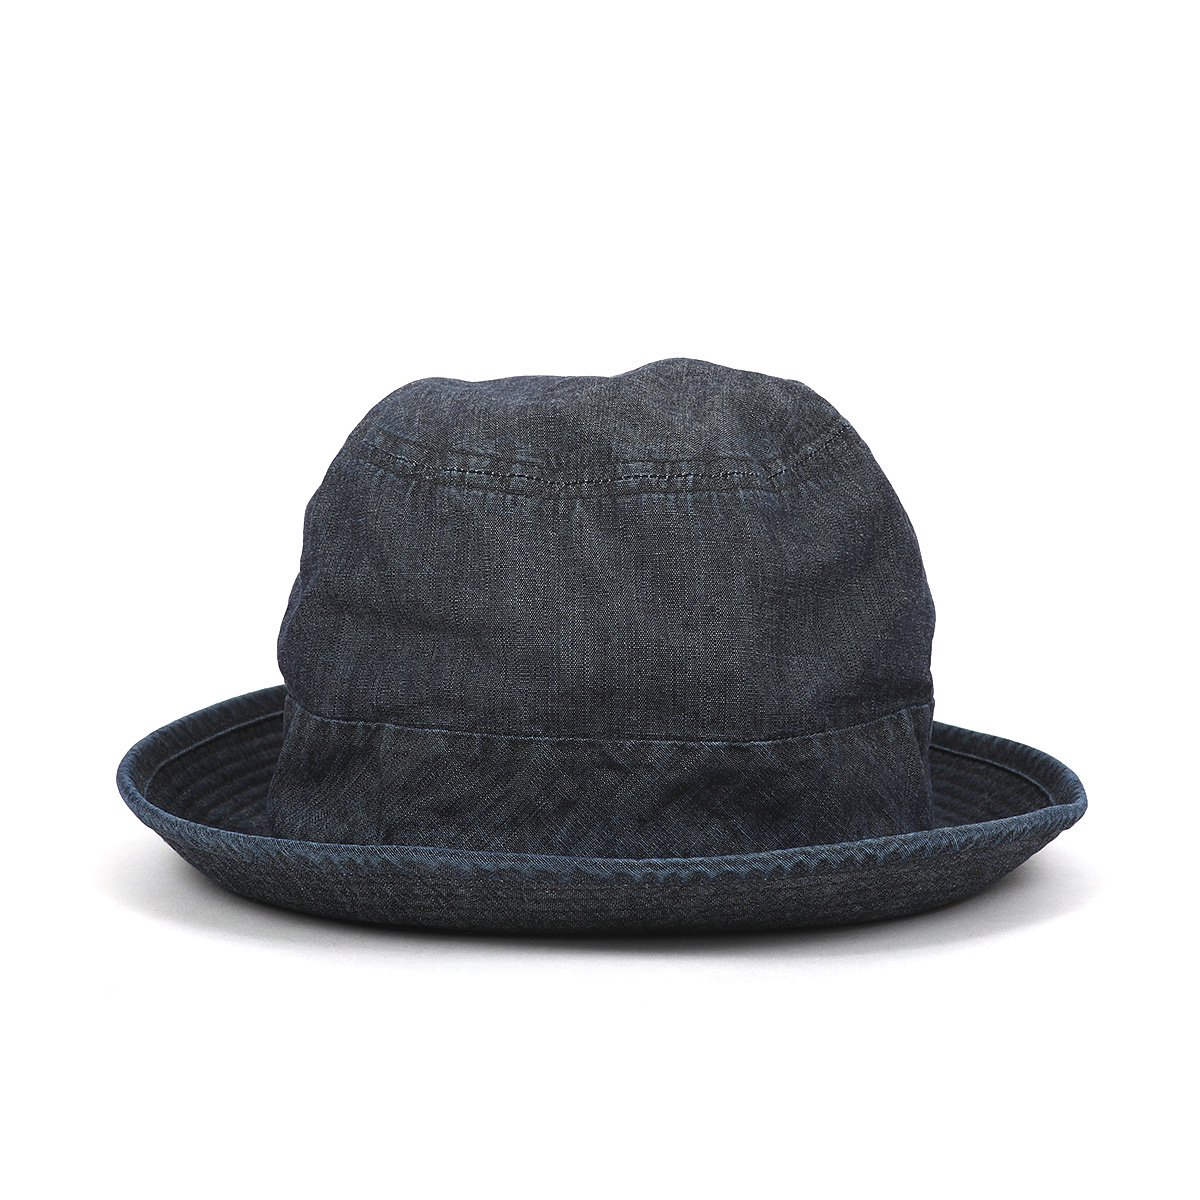 CHAMBRAY COMPACT HAT 詳細画像3